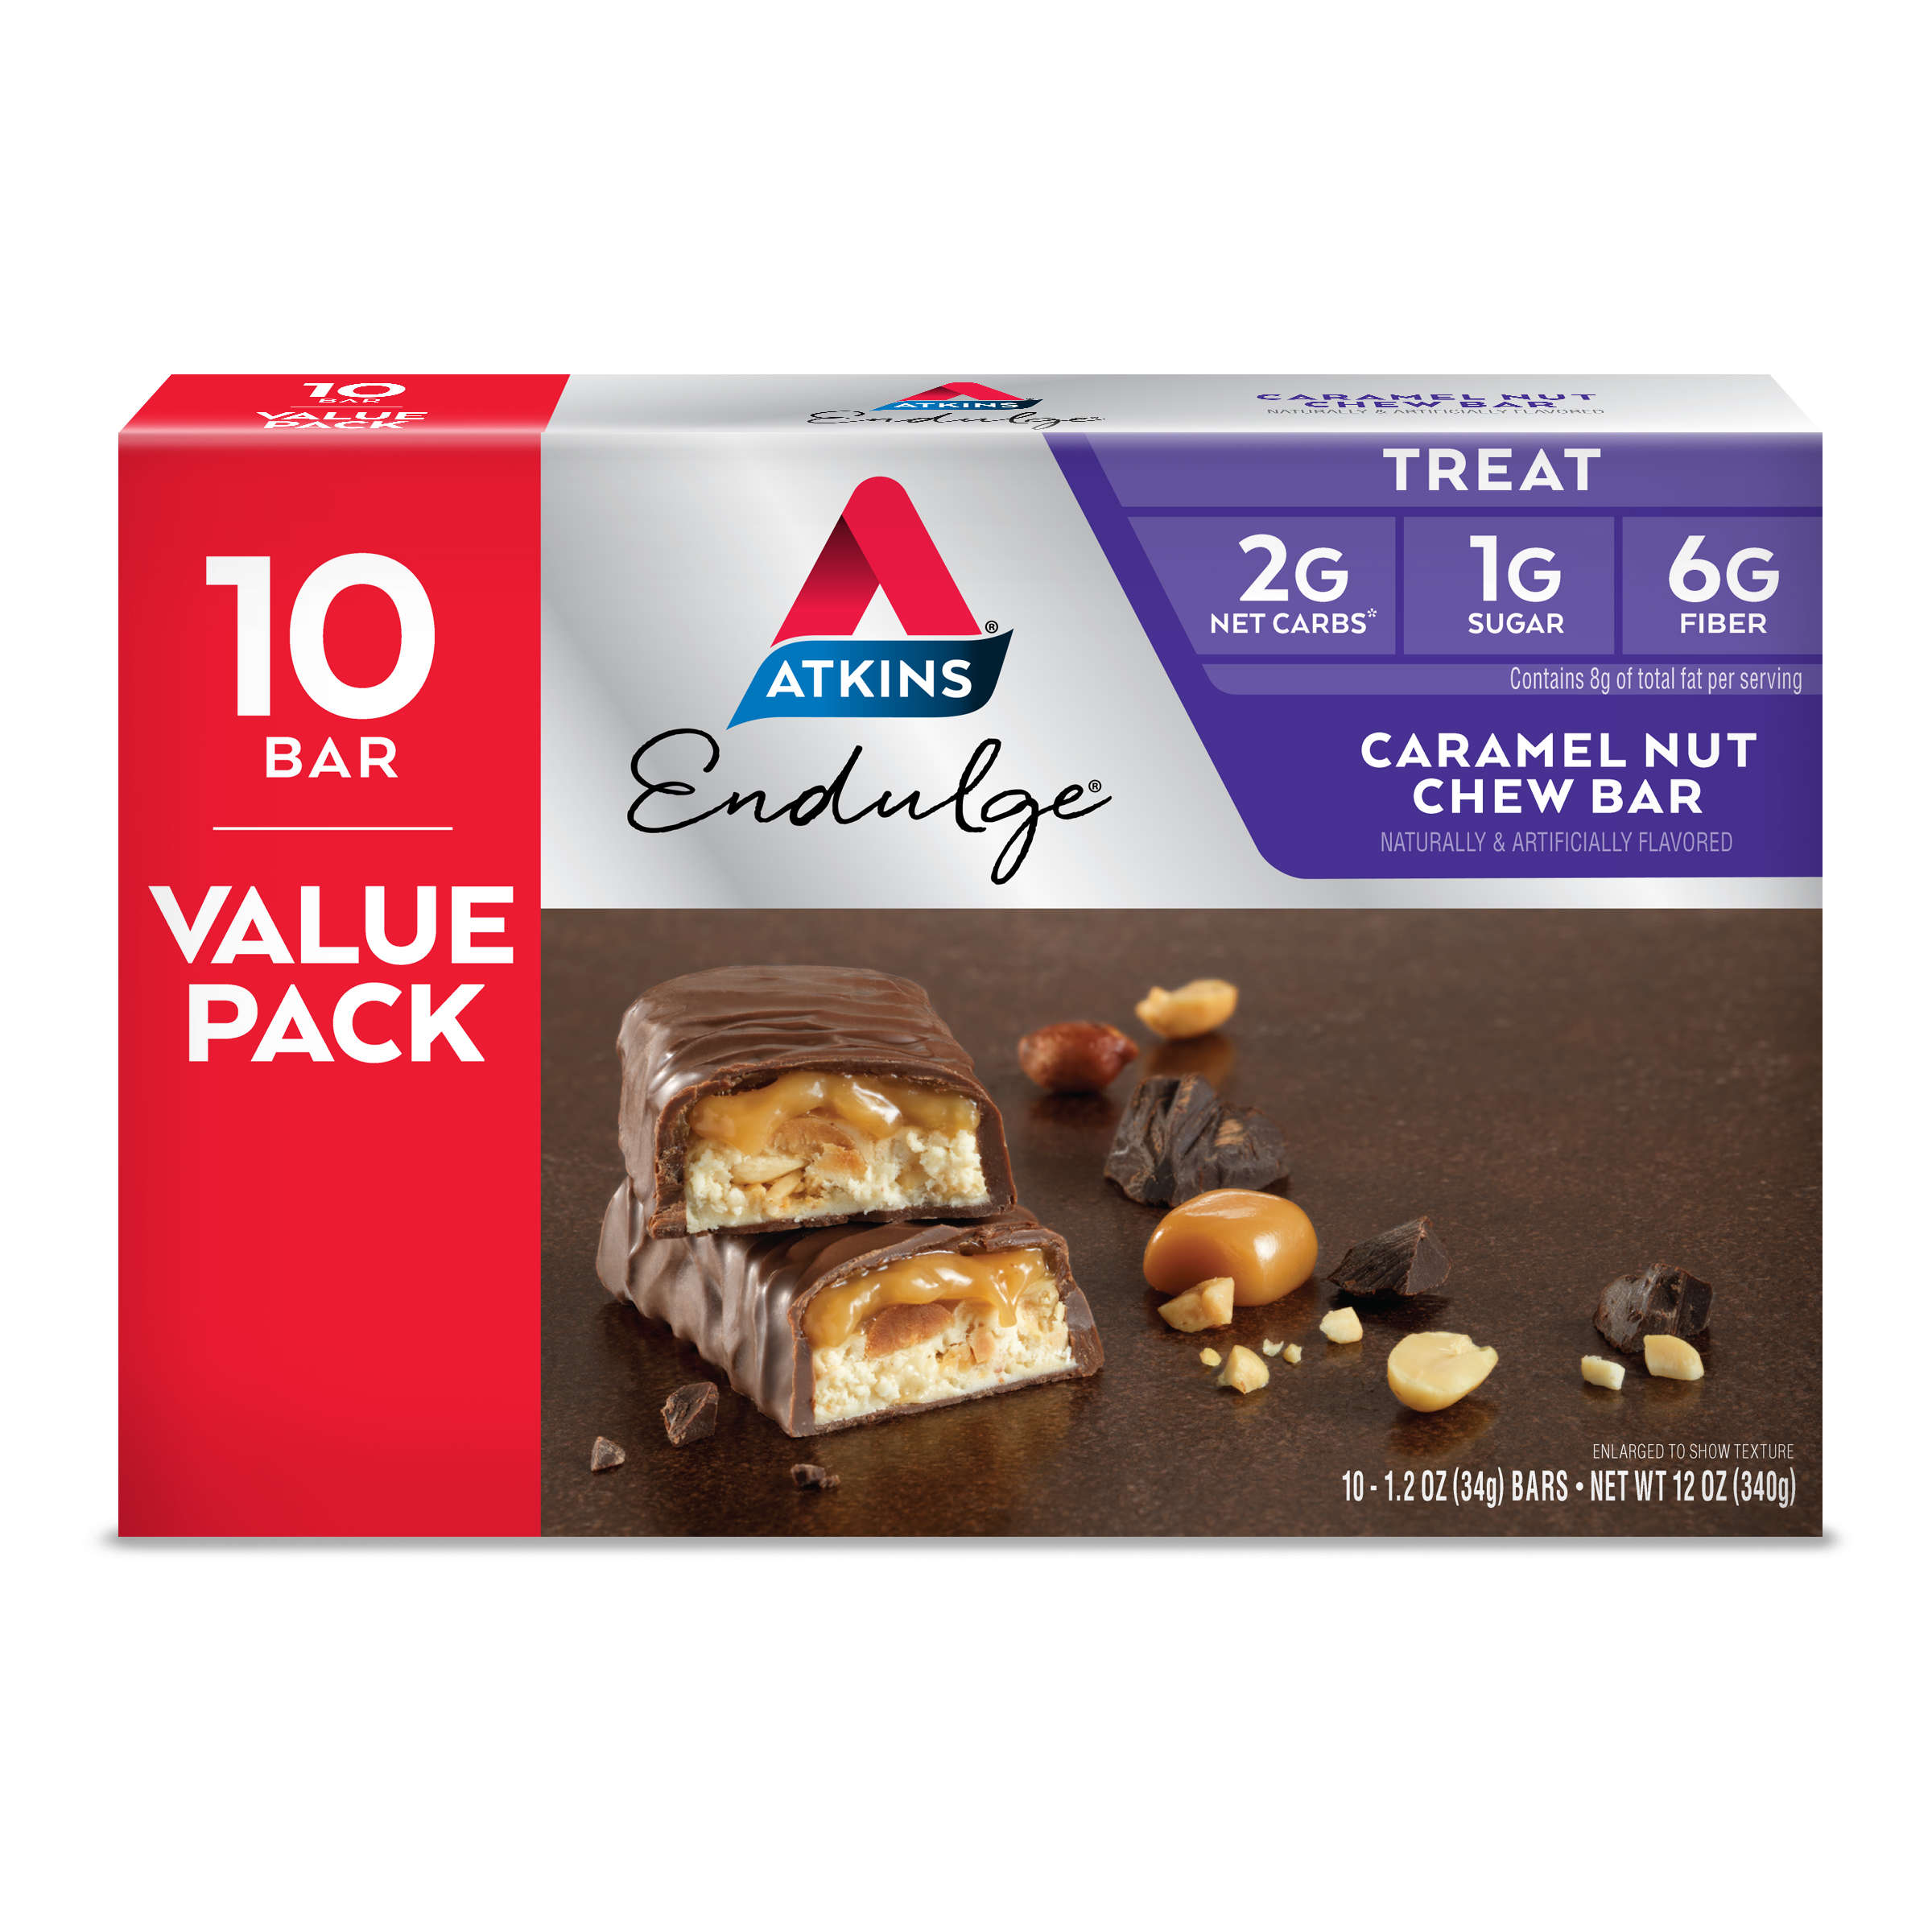 Atkins Endulge Caramel Nut Chew Bar, 1.2oz, 10-pack (Treat)